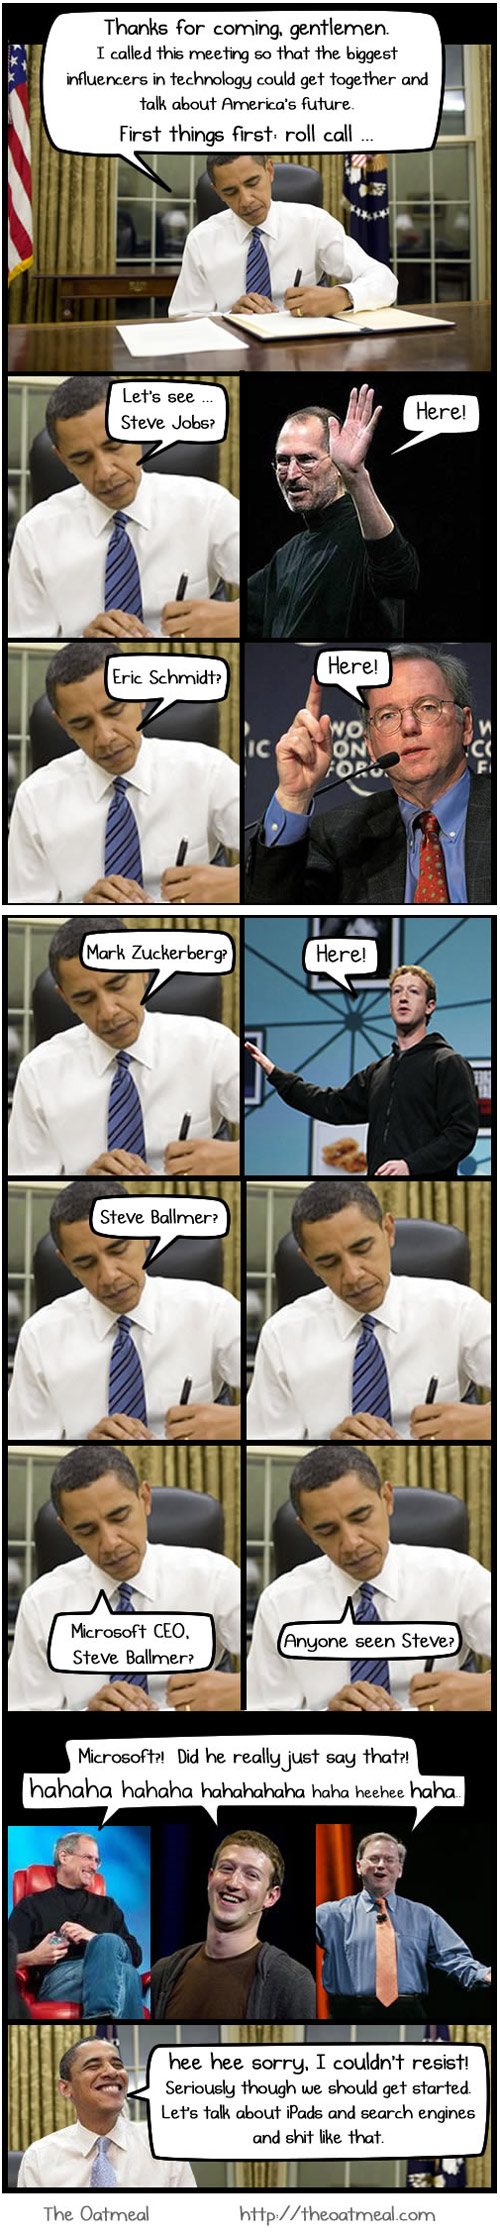 meeting-obama-jobs-zuckerberg-sillicon-valley